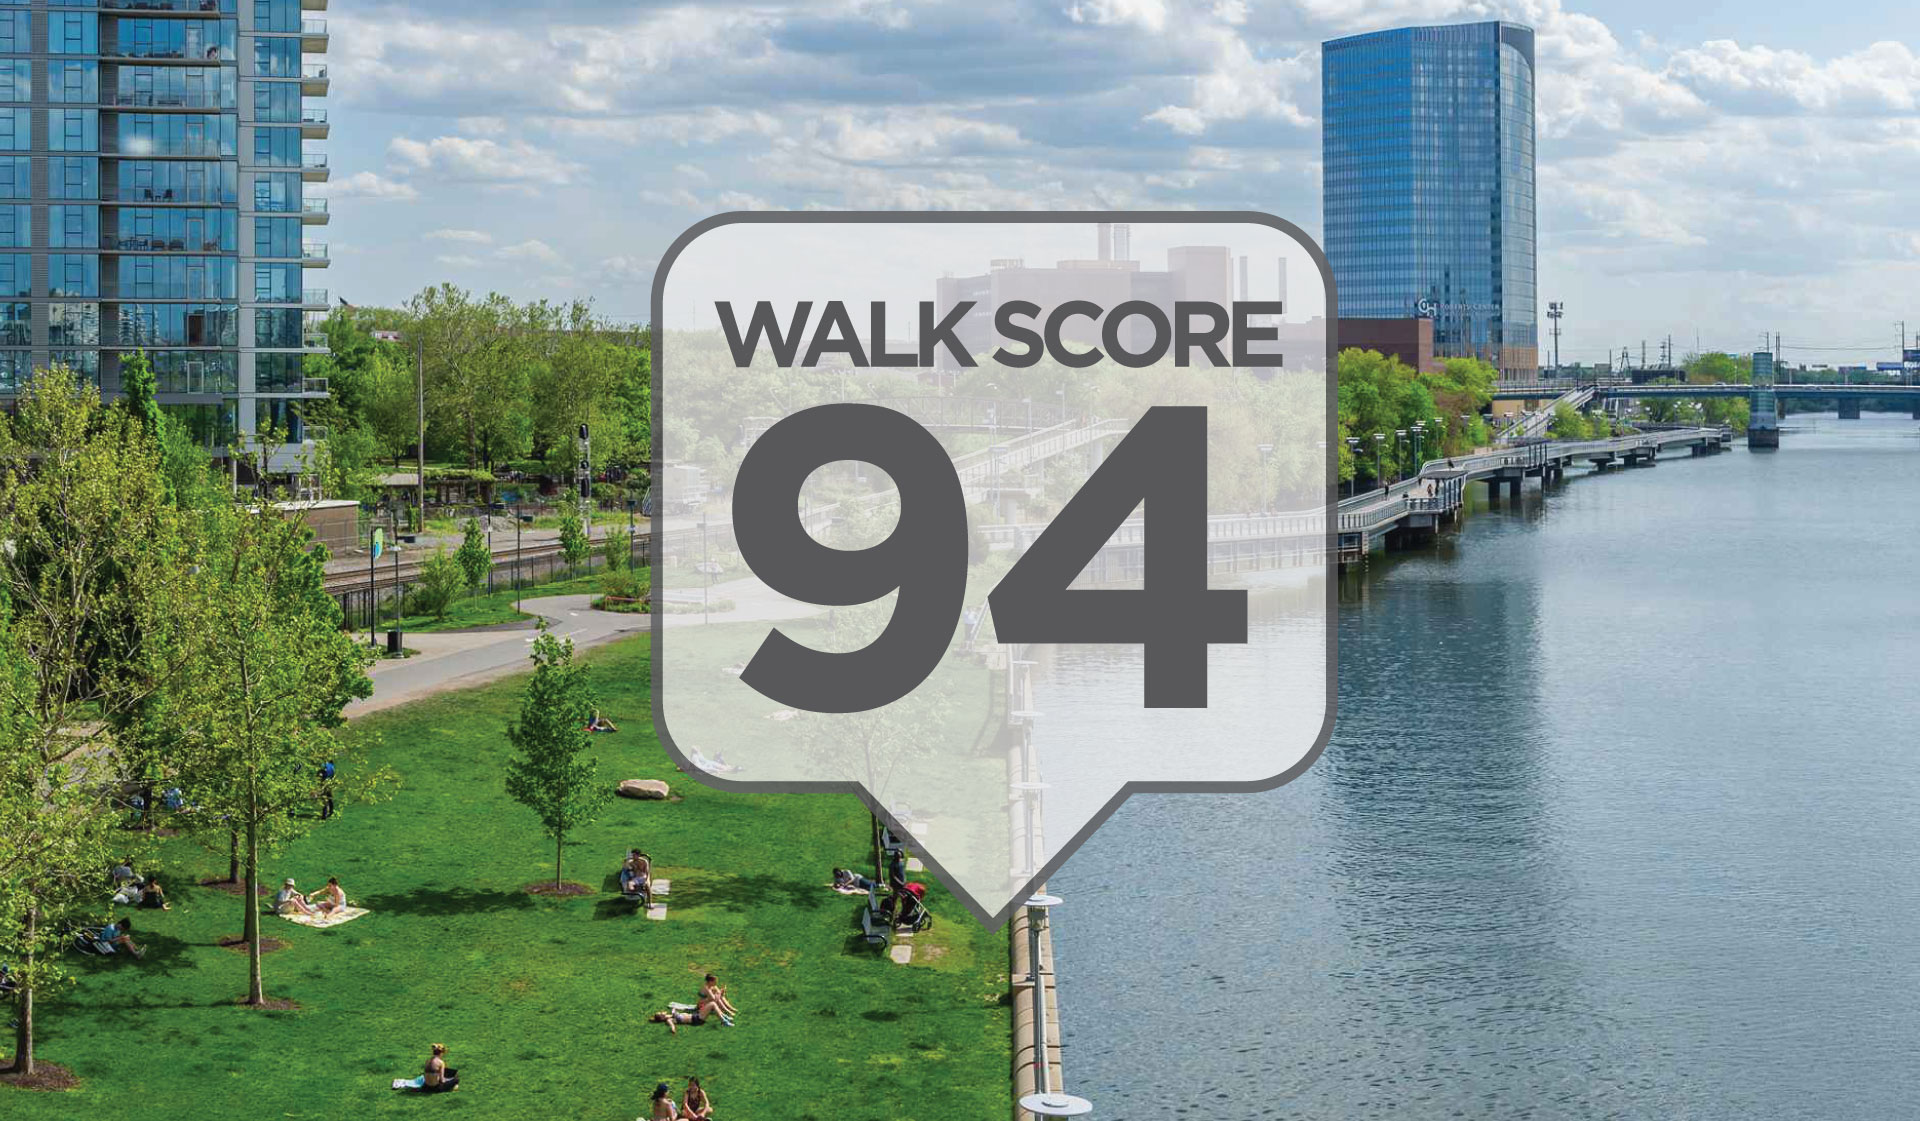 Locust on the Park - Philly Apartments for rent - Walk Score